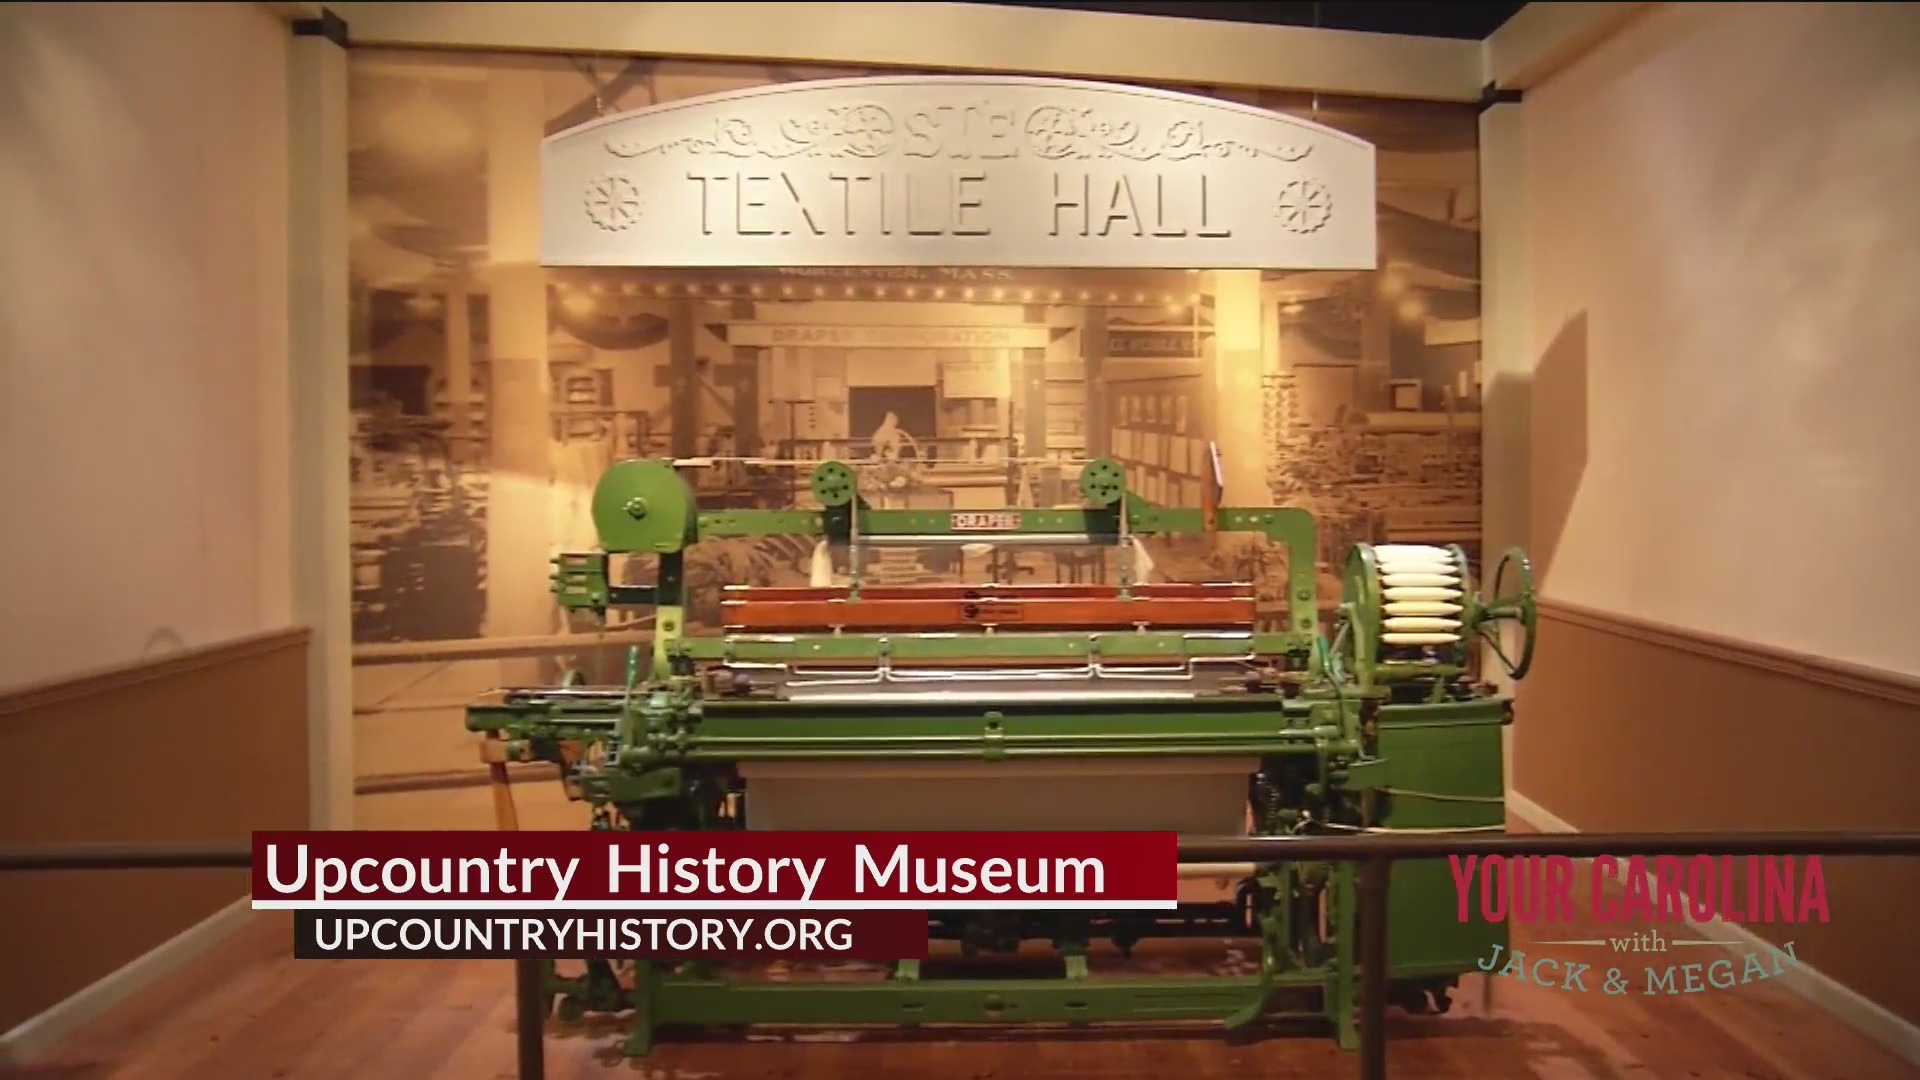 Upcountry History Museum - Preserving the History of Upcountry South Carolina